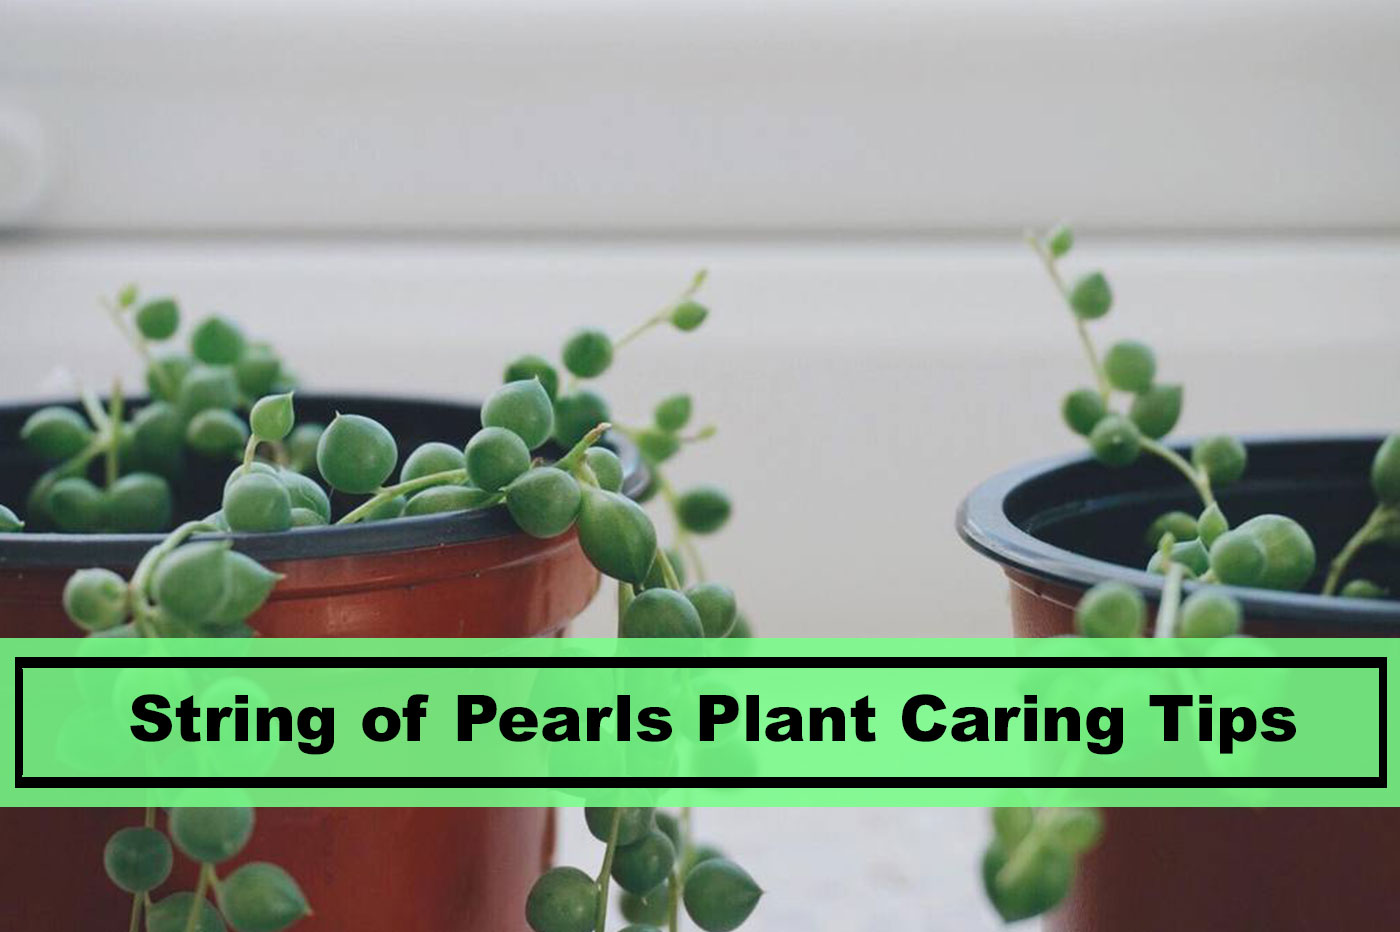 6 Best String Of Pearls Plant Caring Tips For 2020 Plants Spark Joy